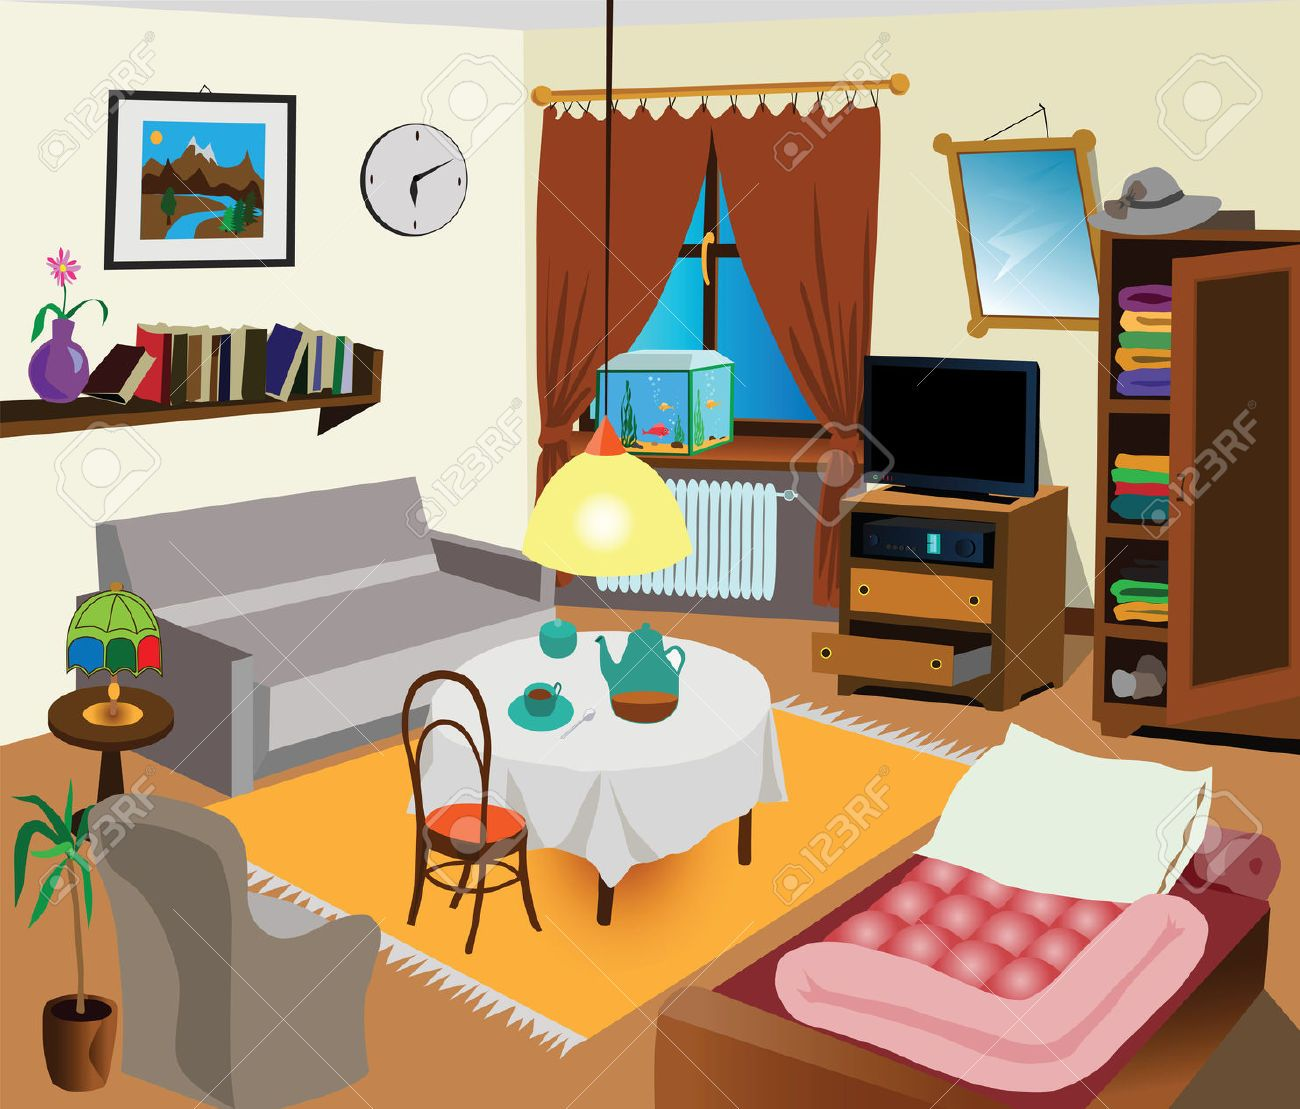 Living Room Clipart - Google Search